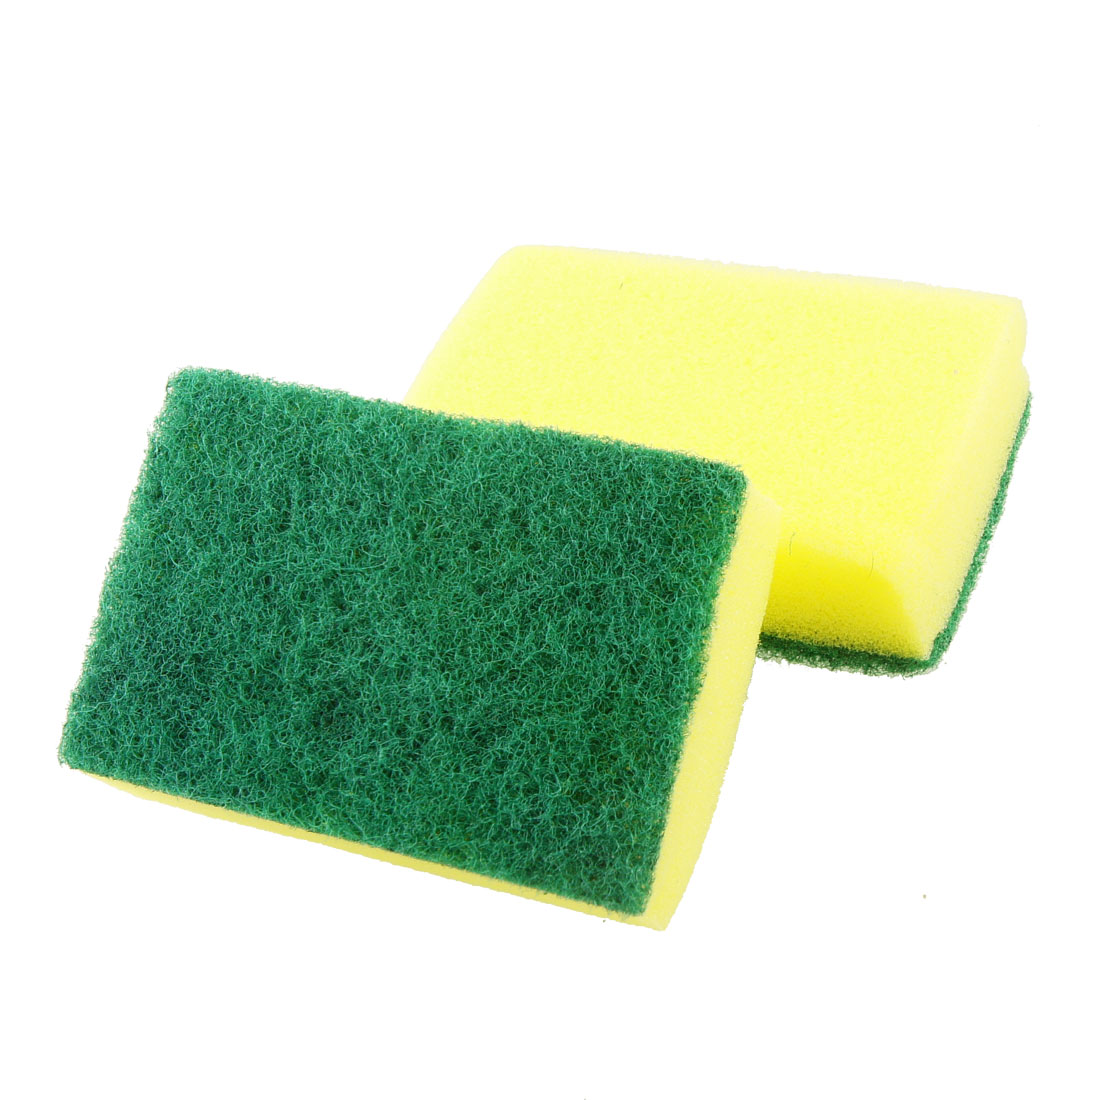 Kitchenware Bowl Dish Cleaning Soft Scrub Sponge Pad Green Yellow